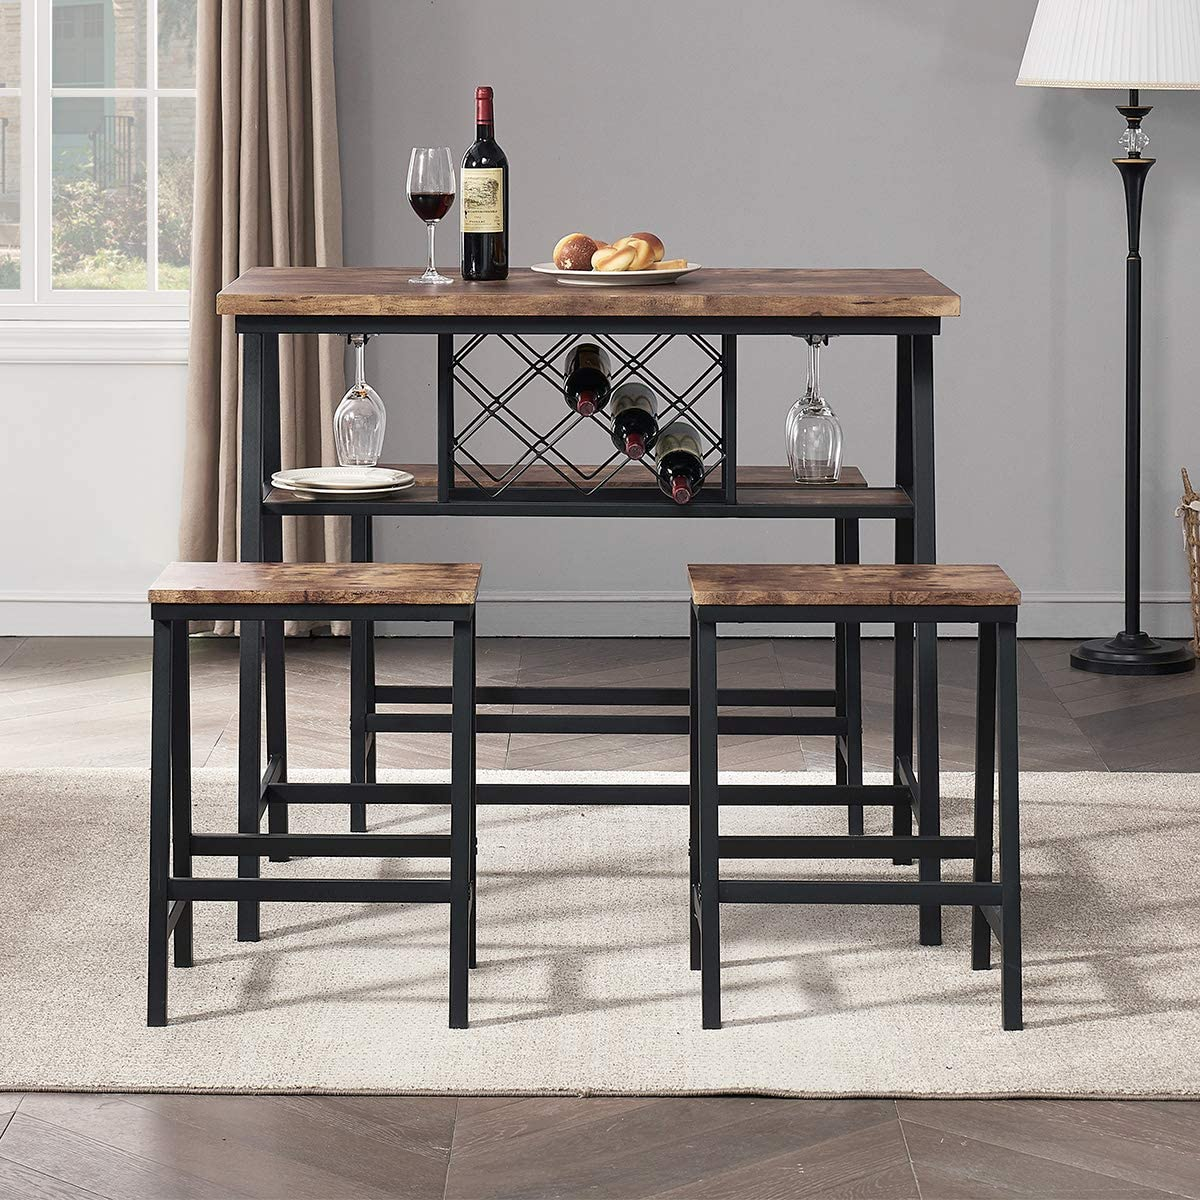 O&K FURNITURE 4-Piece Counter Height Dining Room Table Set, Bar Table with One Bench and 2 Stools, Industrial Table with Wine Rack for Kitchen Counter, Small Space Table and Chairs Set, Rustic Brown